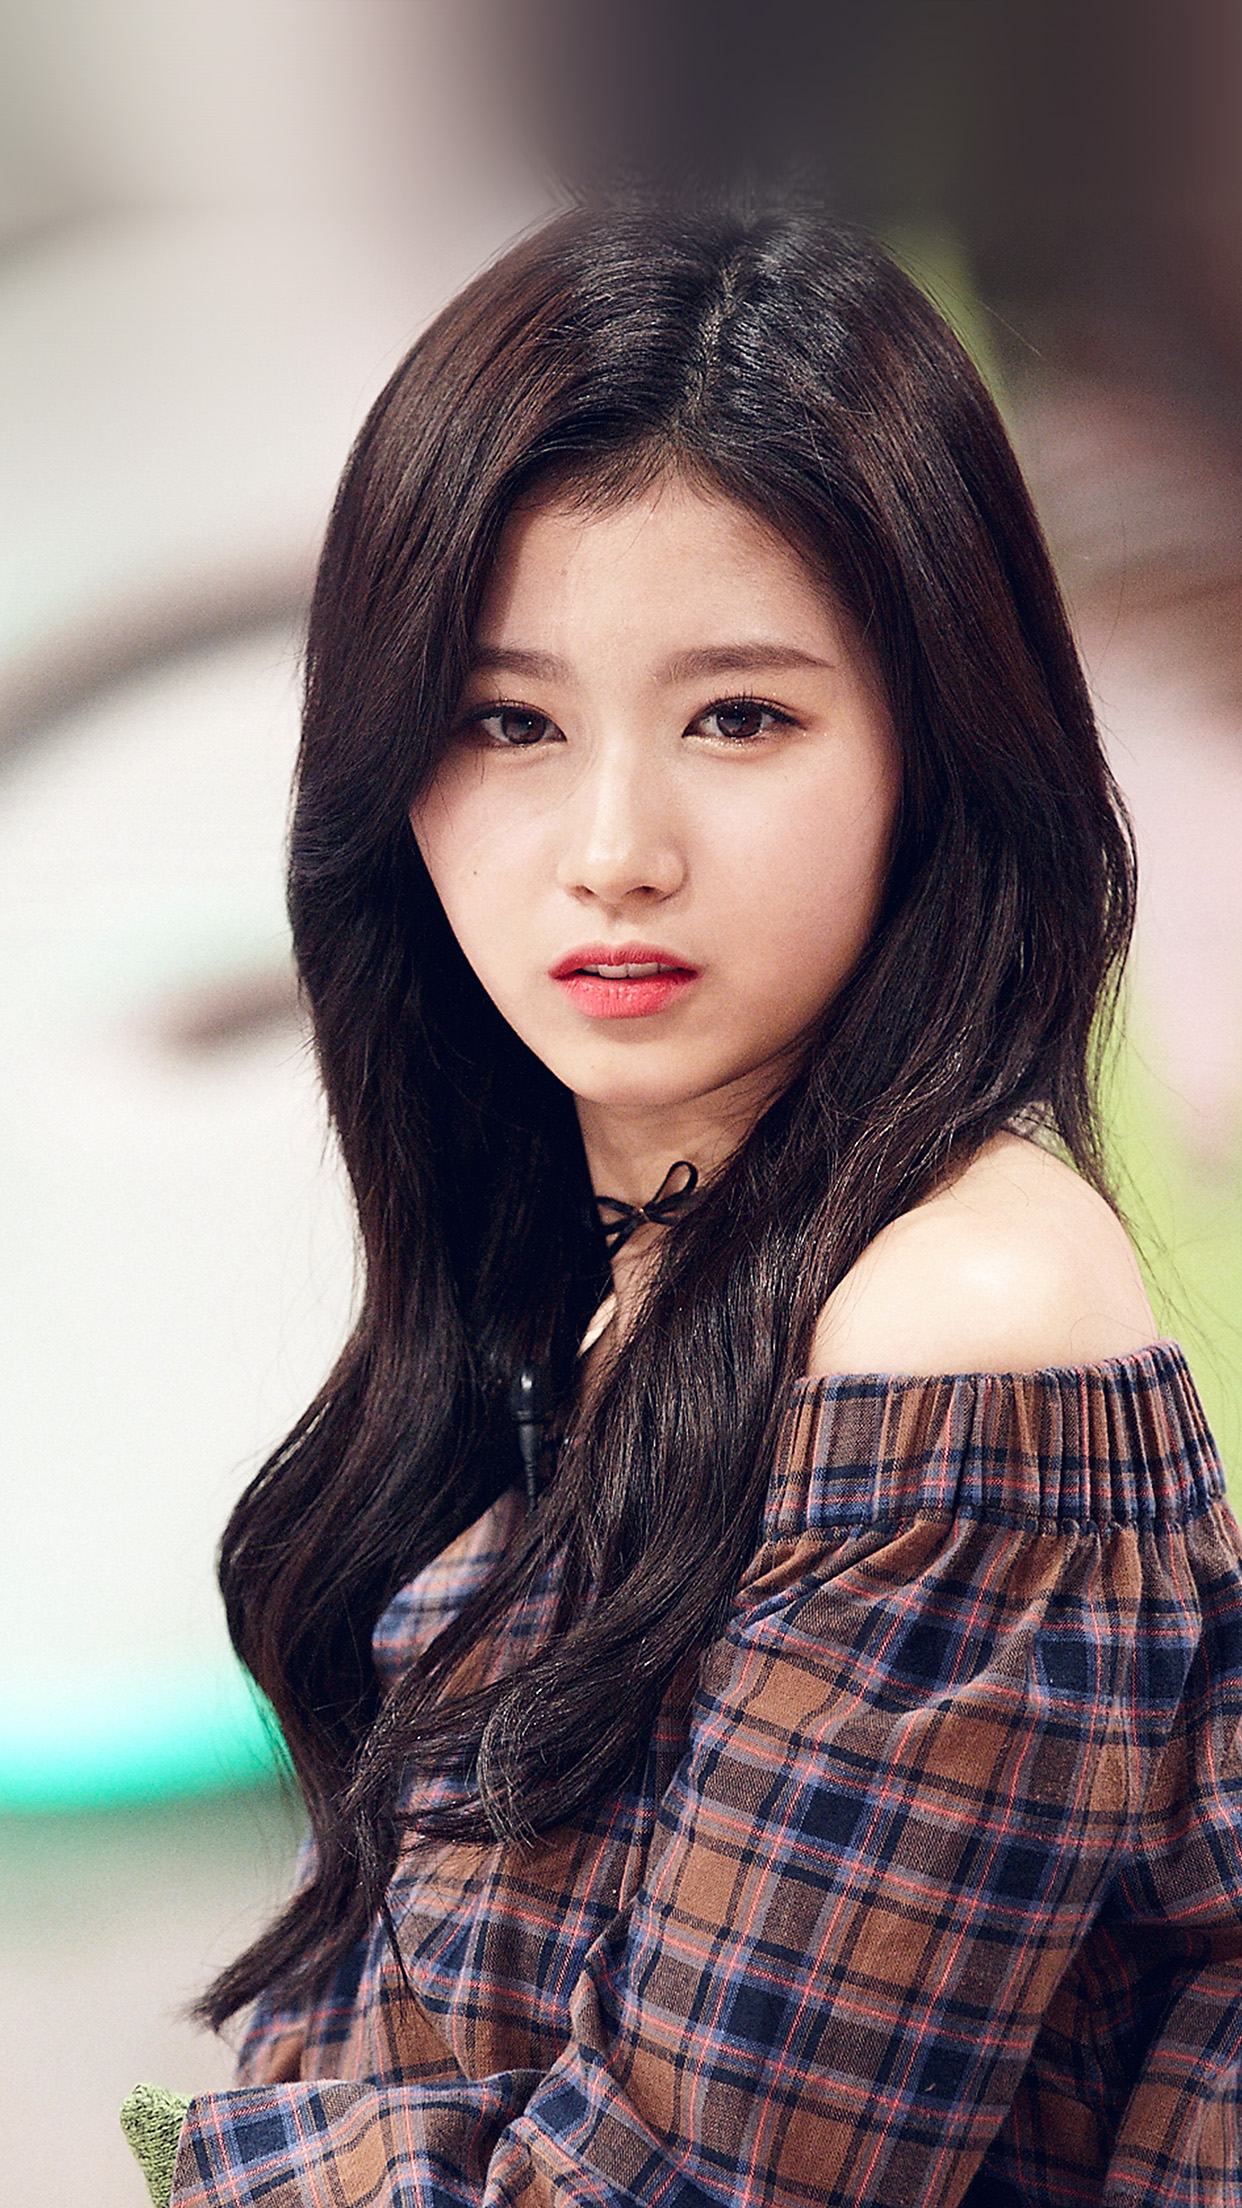 sana kpop cute girl celebrity android wallpaper - android hd wallpapers